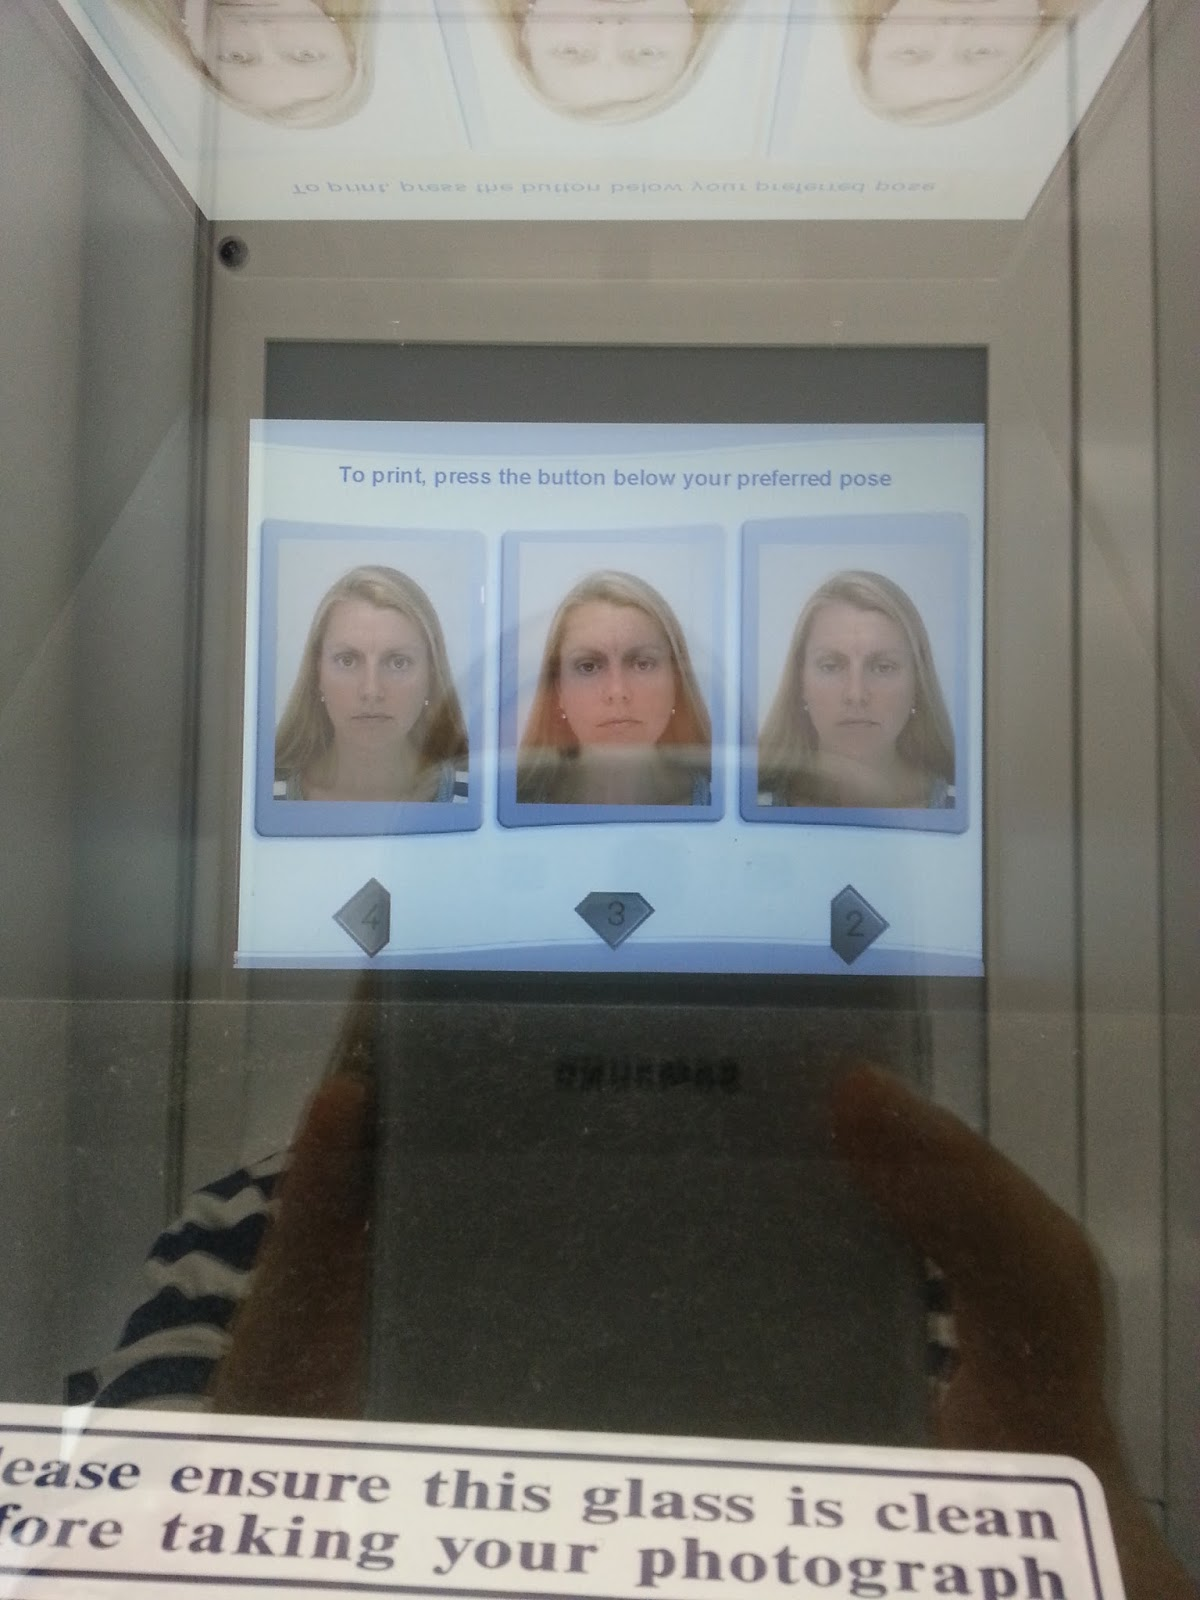 passport photo machine